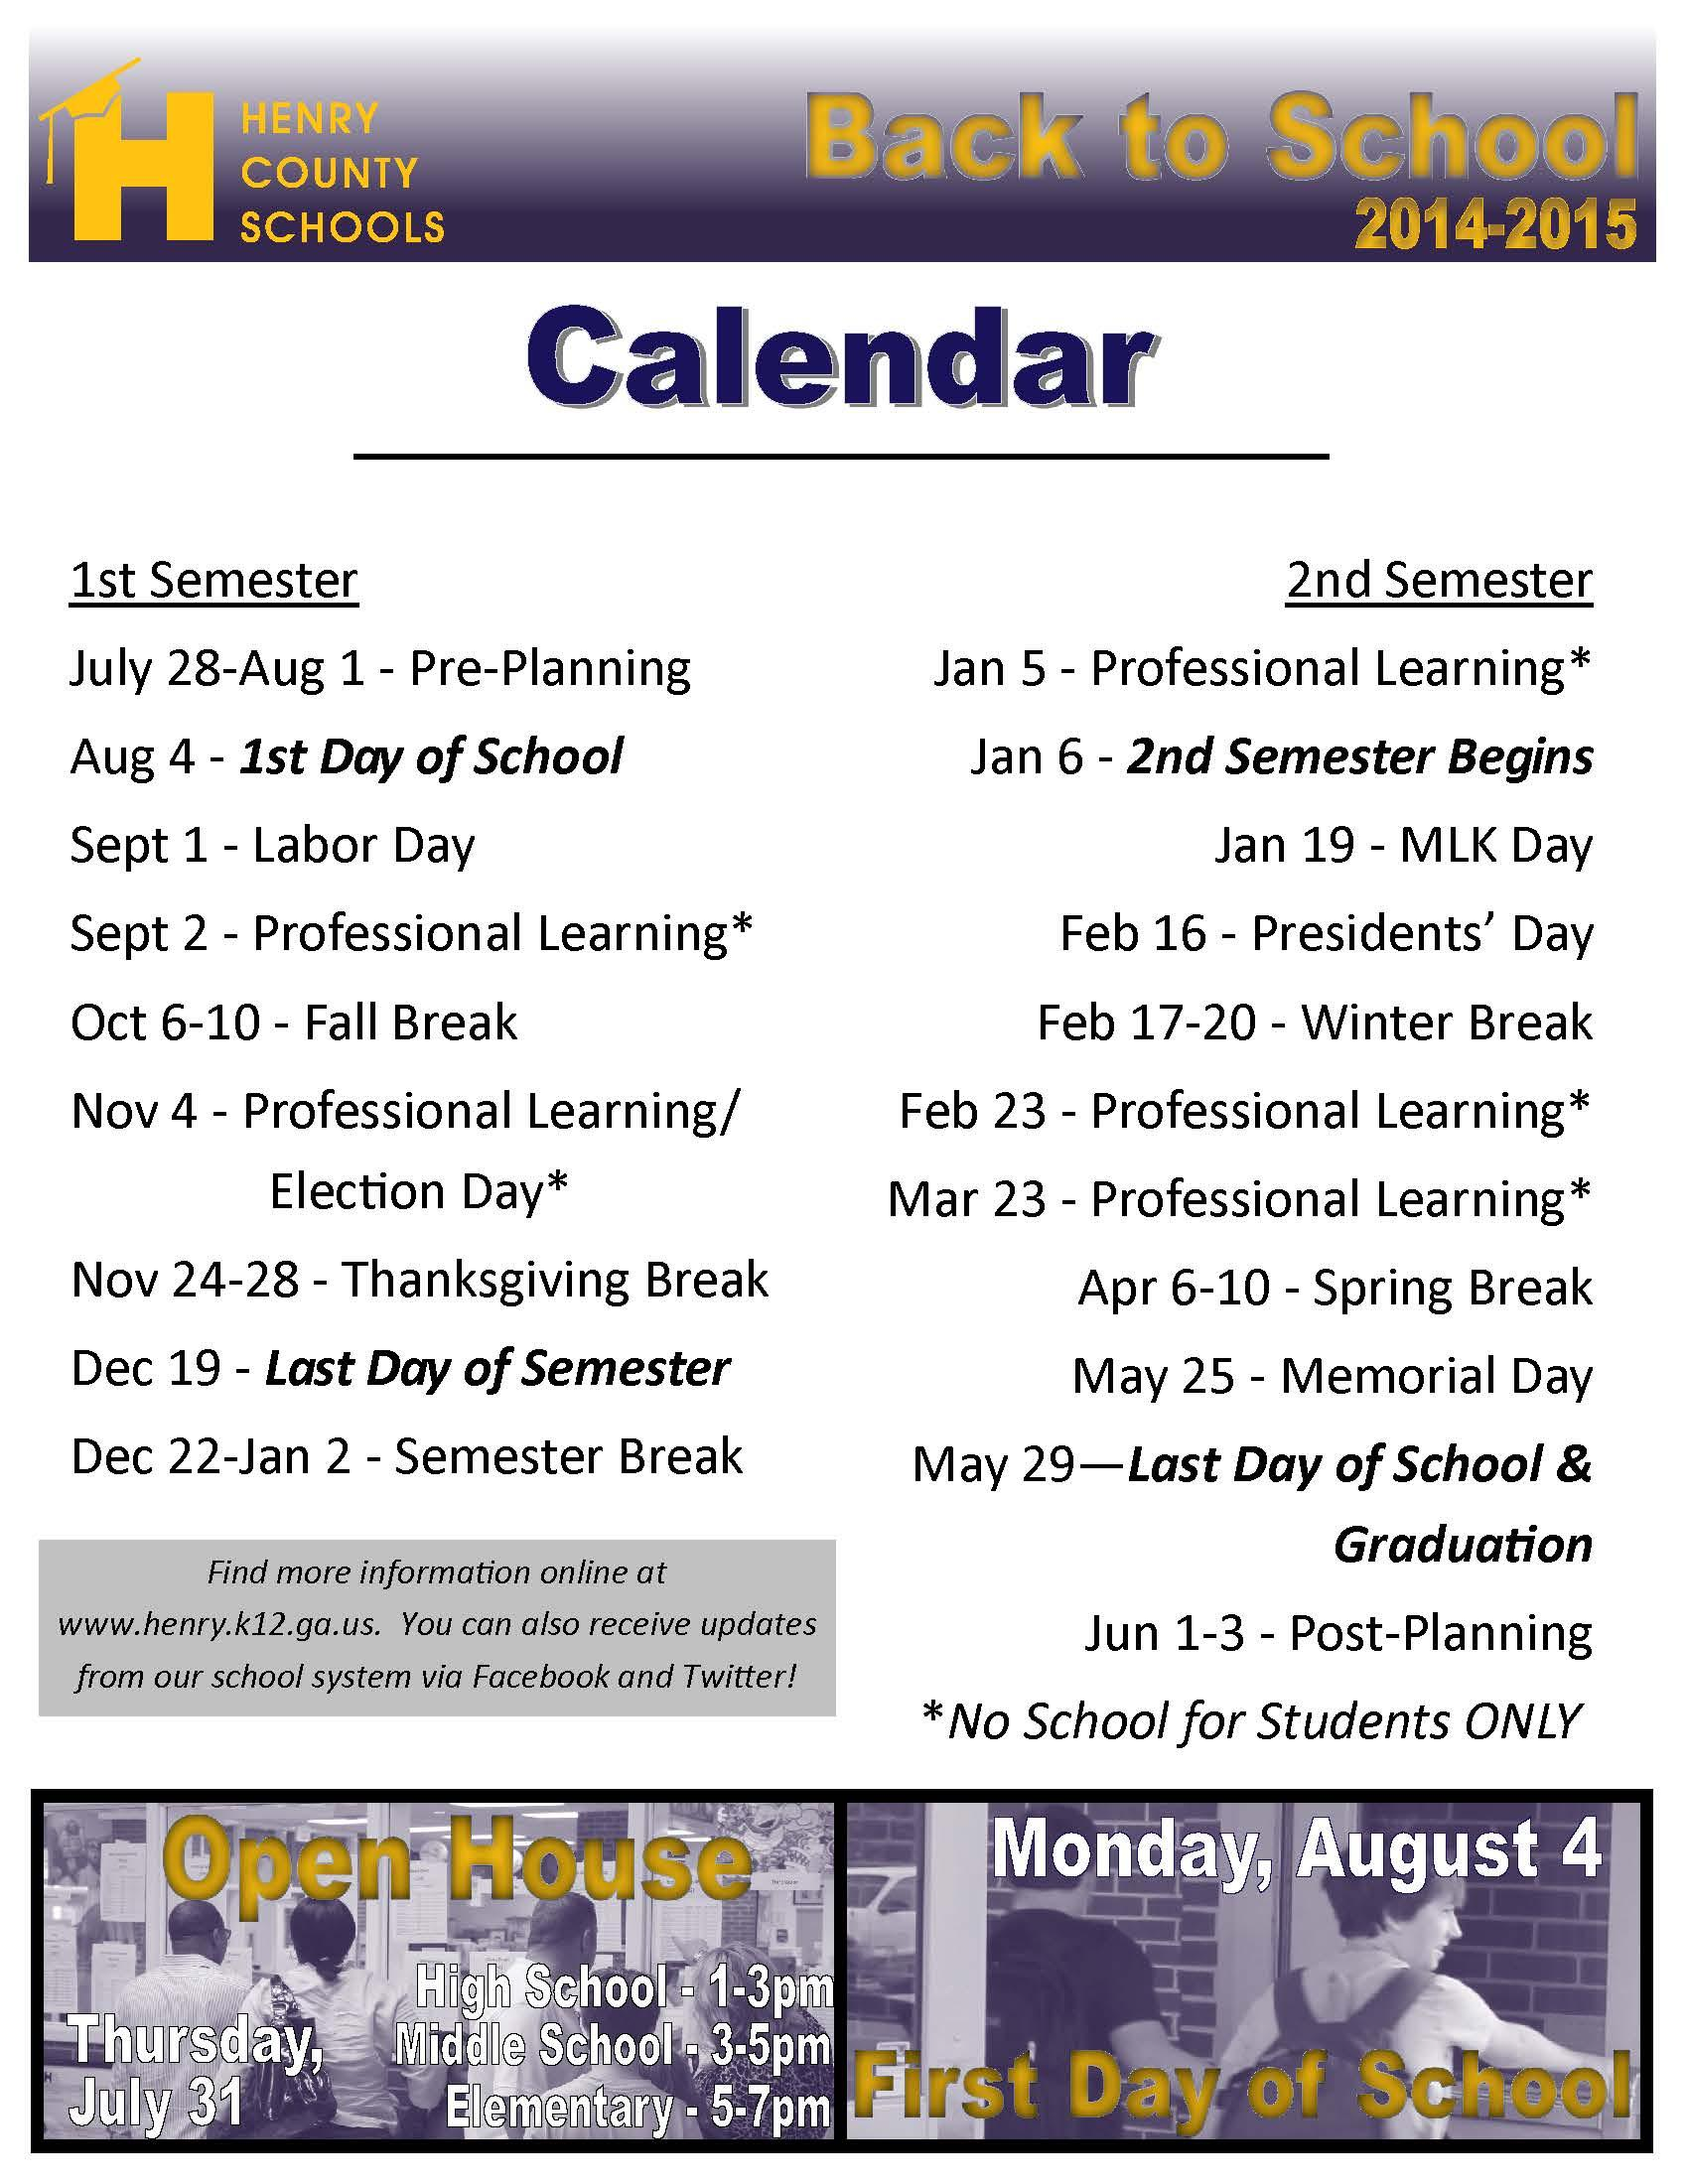 Open House, Back to School, and other calendar information